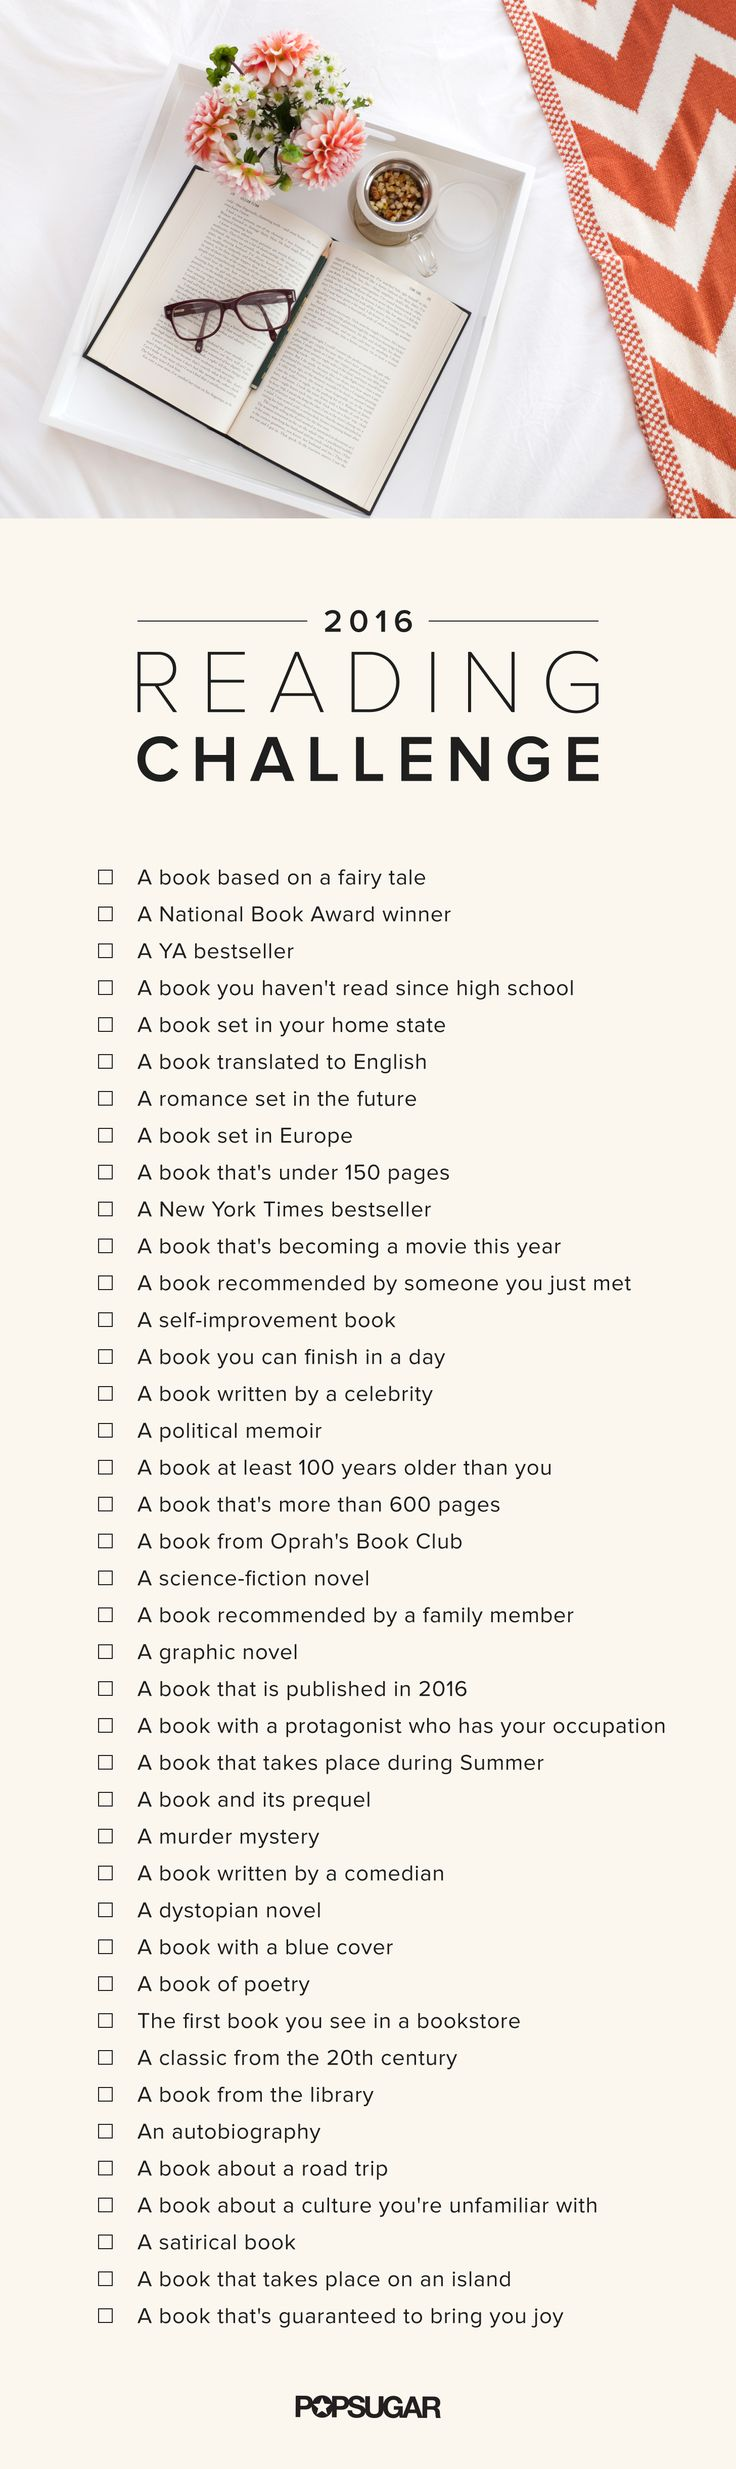 Last year's list was great. I can't wait to start this year's. - Take 2016's Ultimate Reading Challenge! Challenge Accepted.